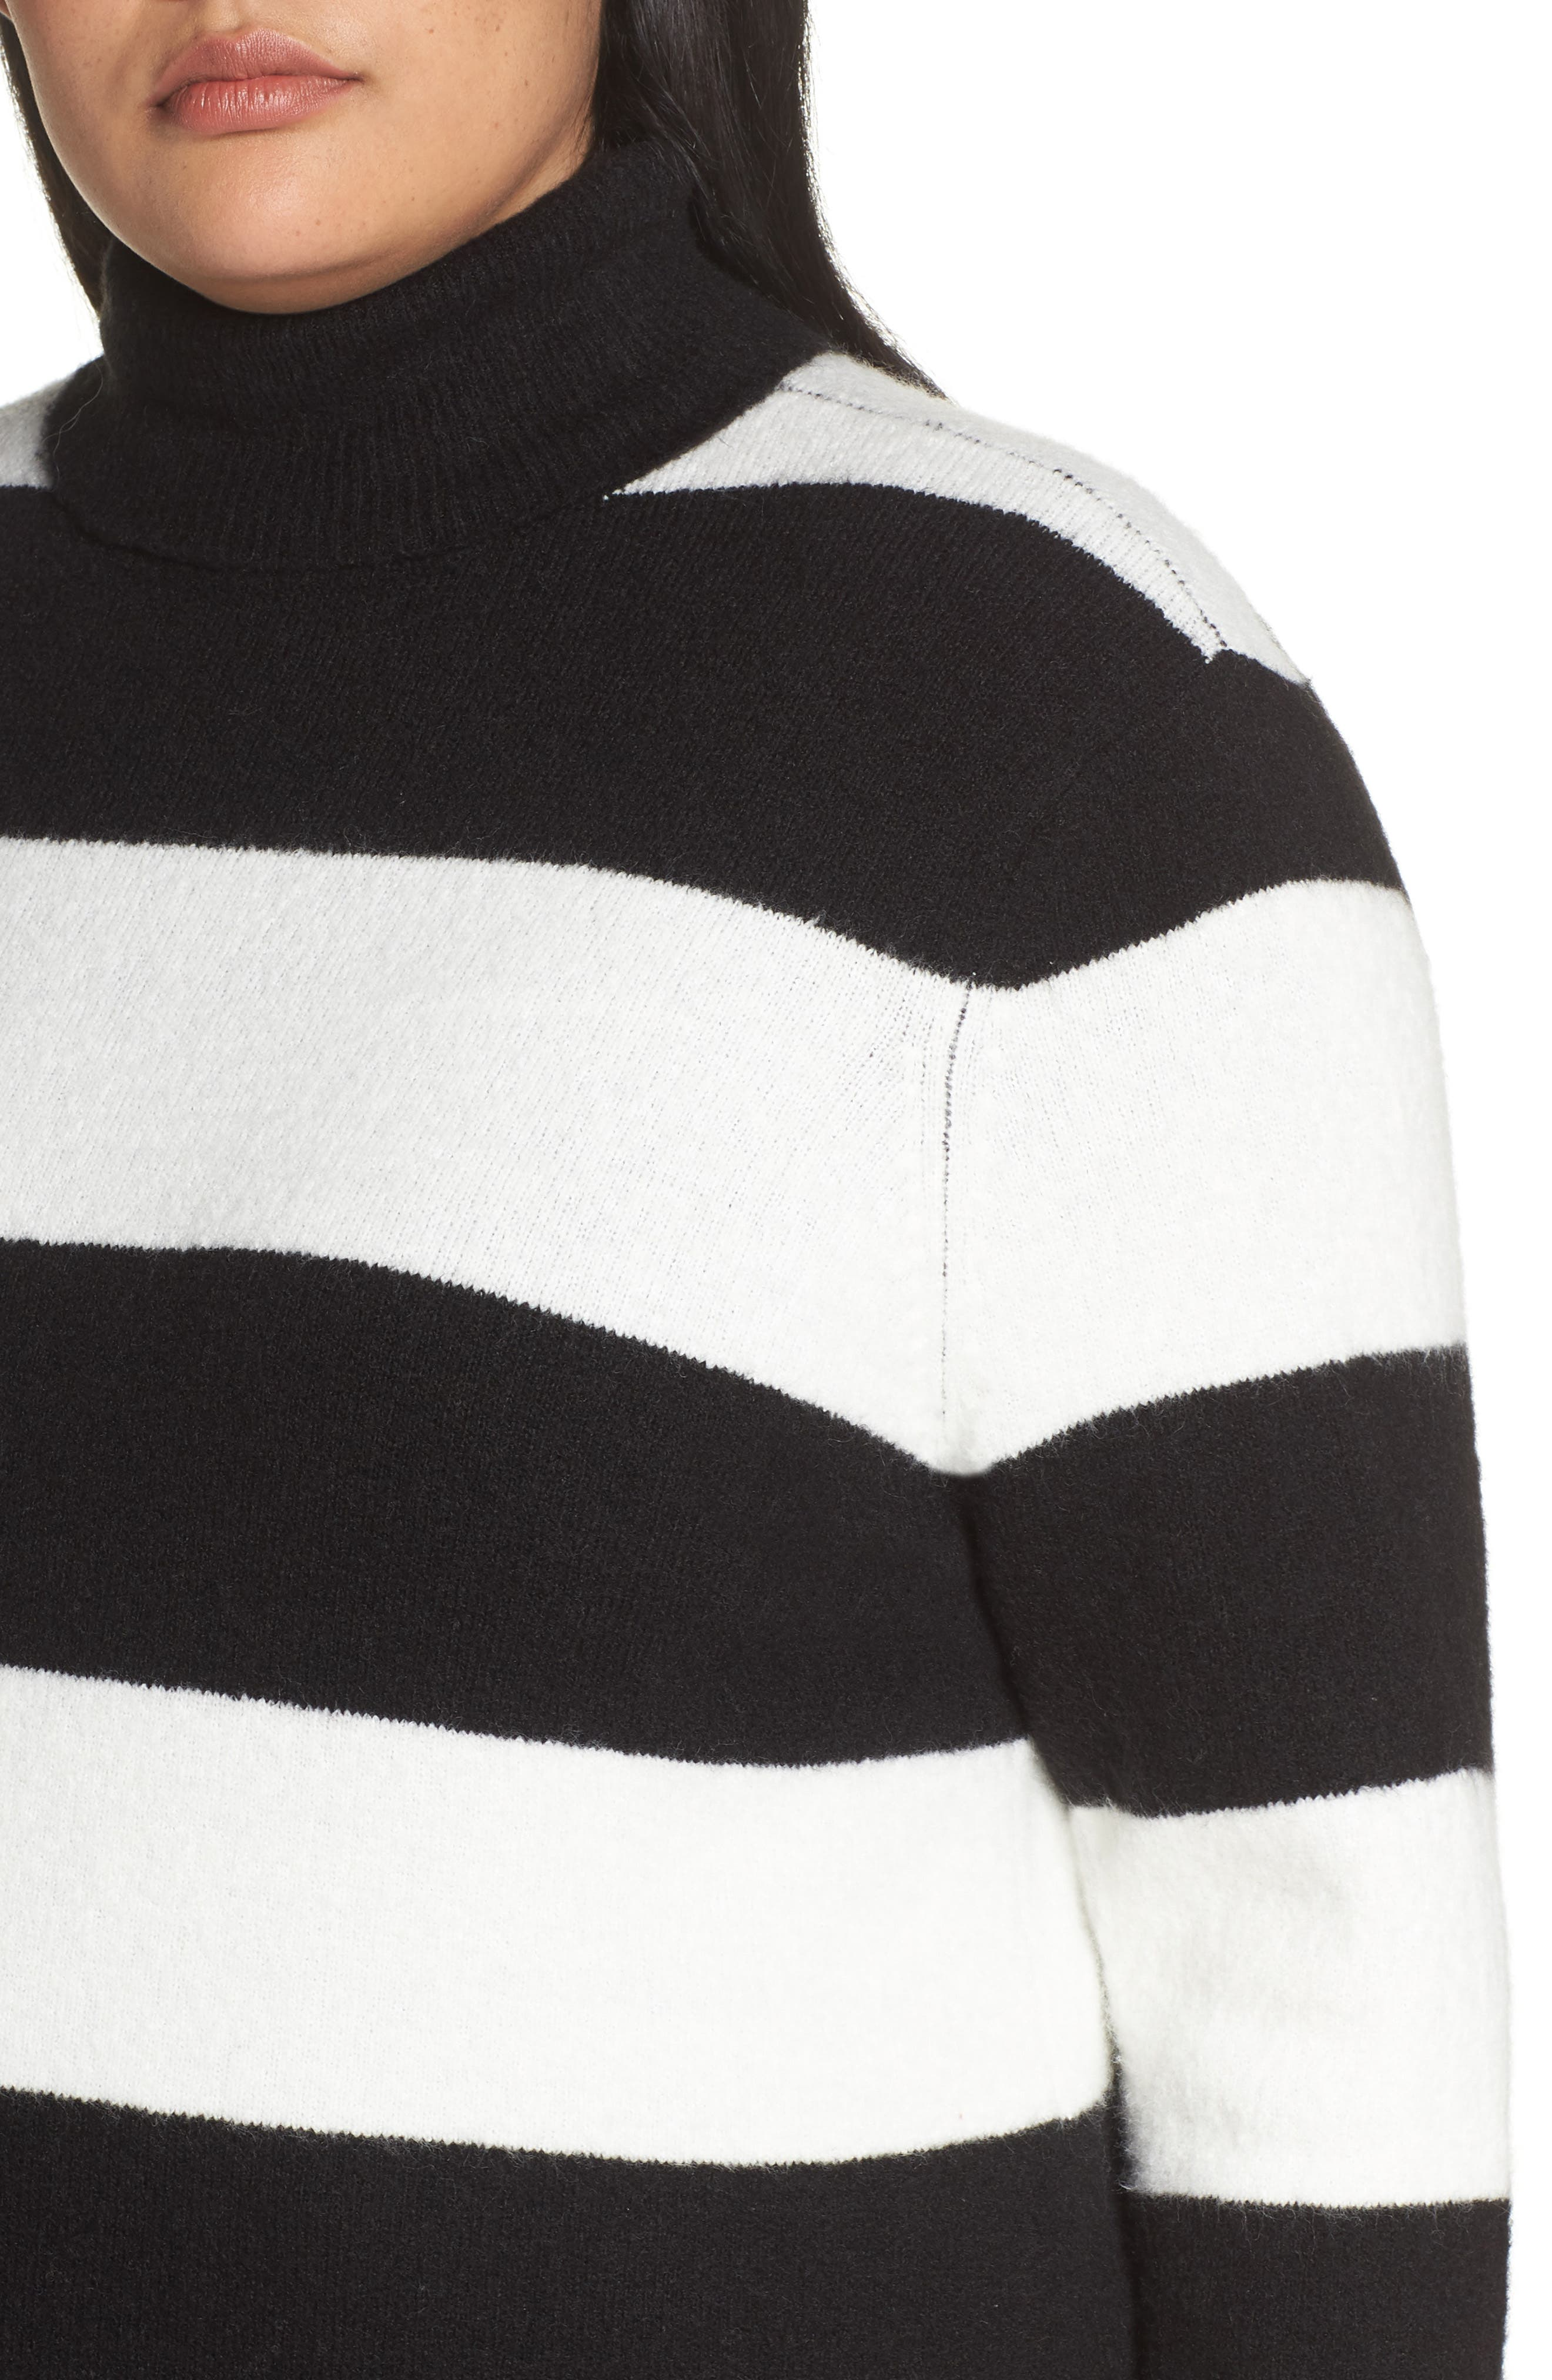 x Atlantic-Pacific Stripe Turtleneck Sweater,                             Alternate thumbnail 4, color,                             BLACK- IVORY STRIPE